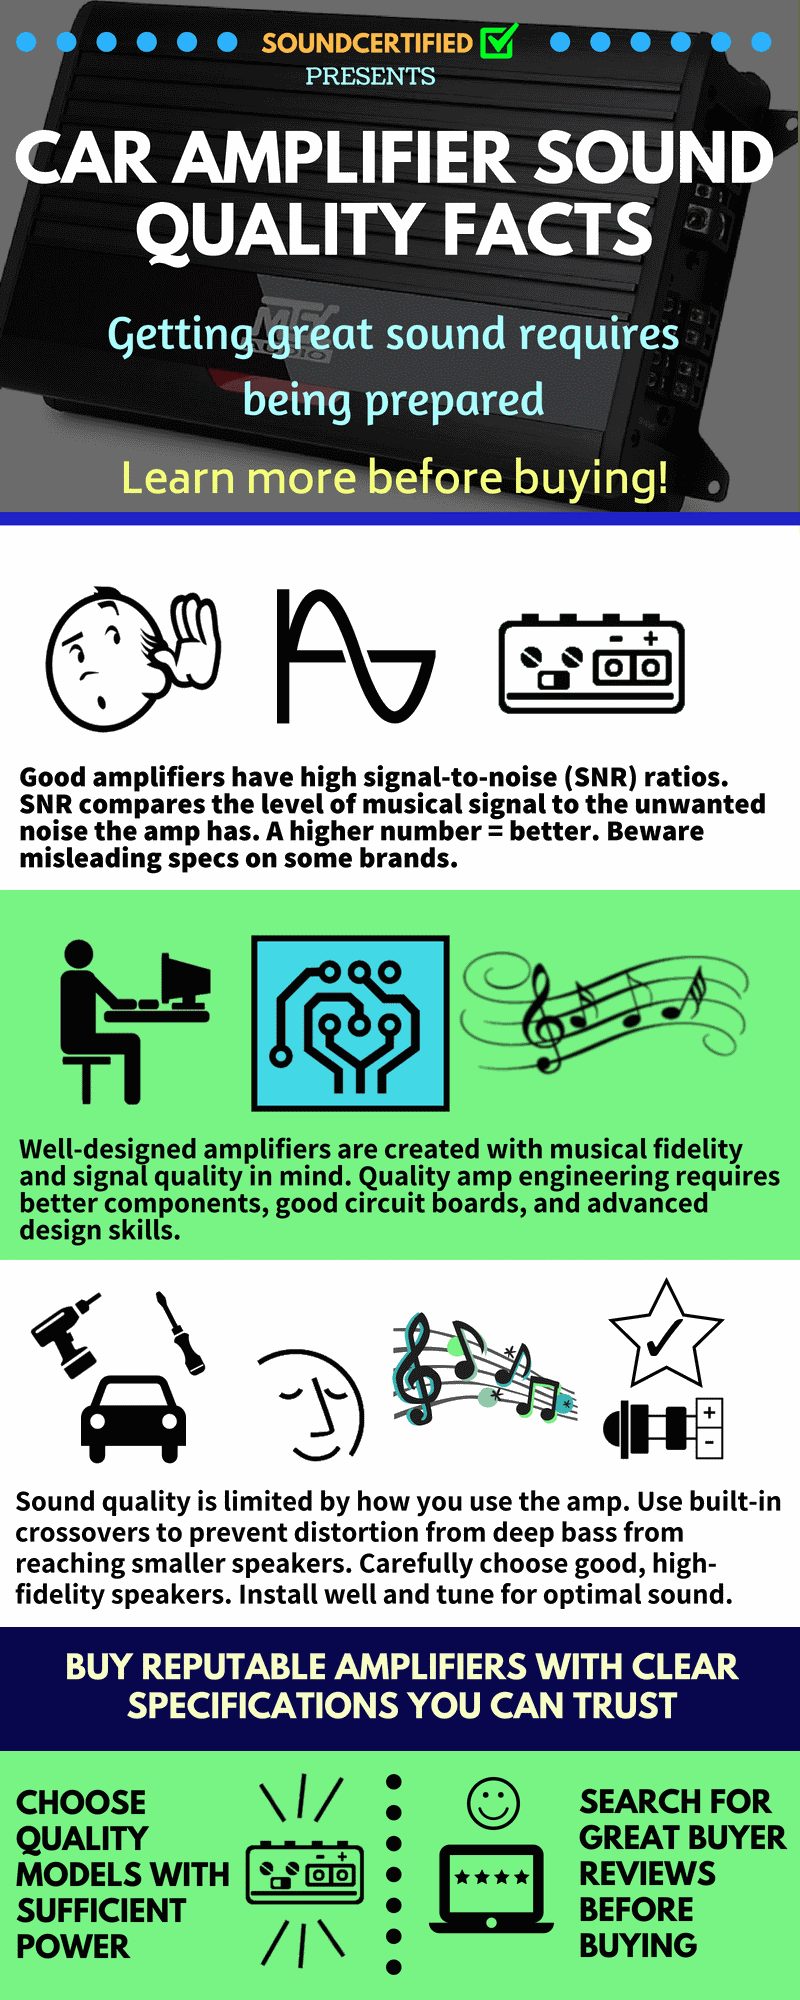 Car amplifier sound quality facts infographic